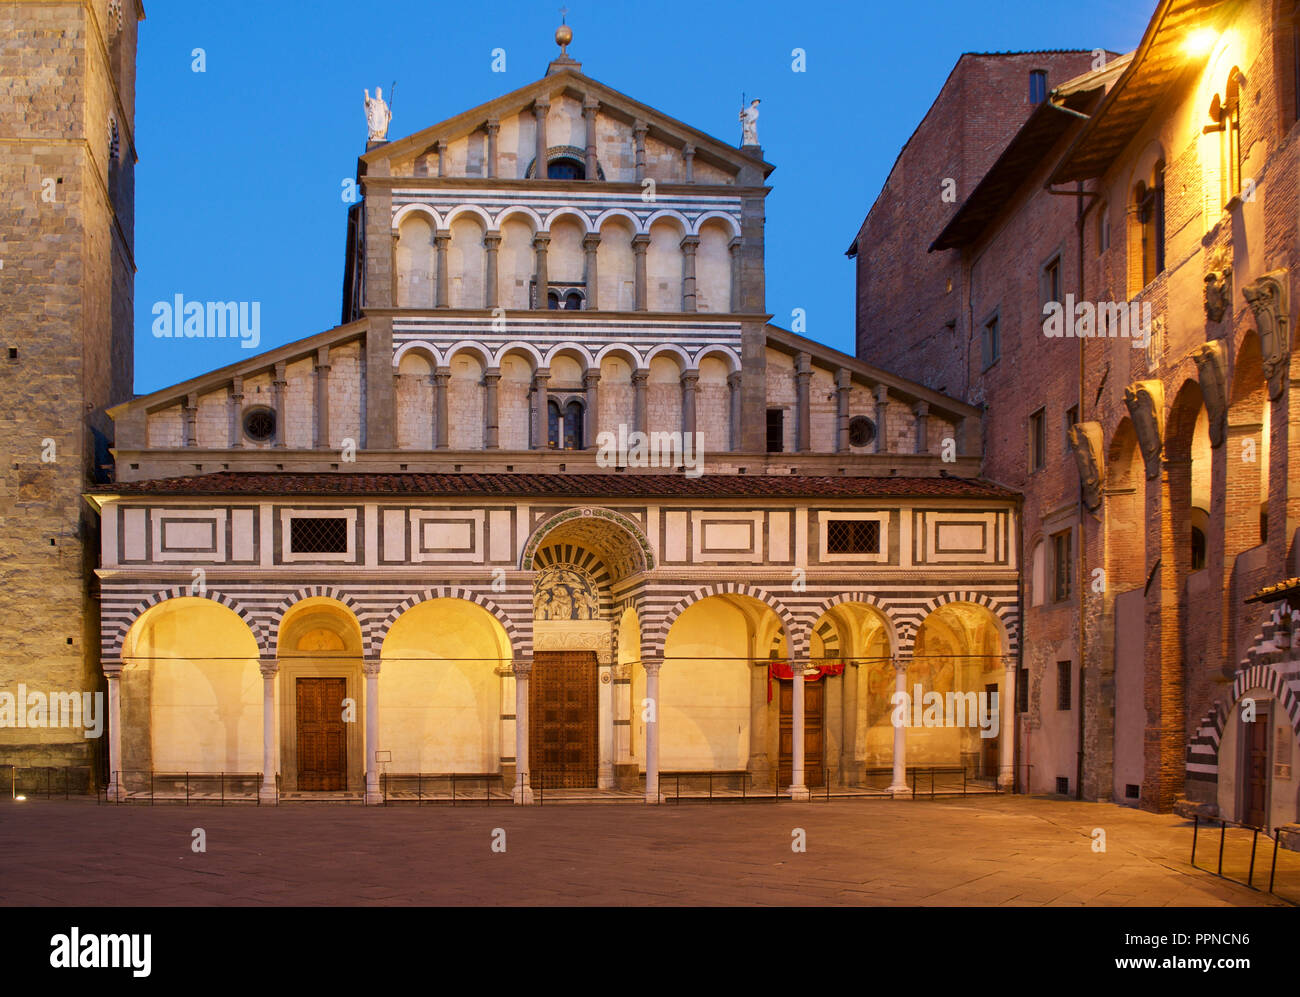 Pistoia central square (Piazza duomo) Cathedral facade during blue hour with soft golden light - Stock Image